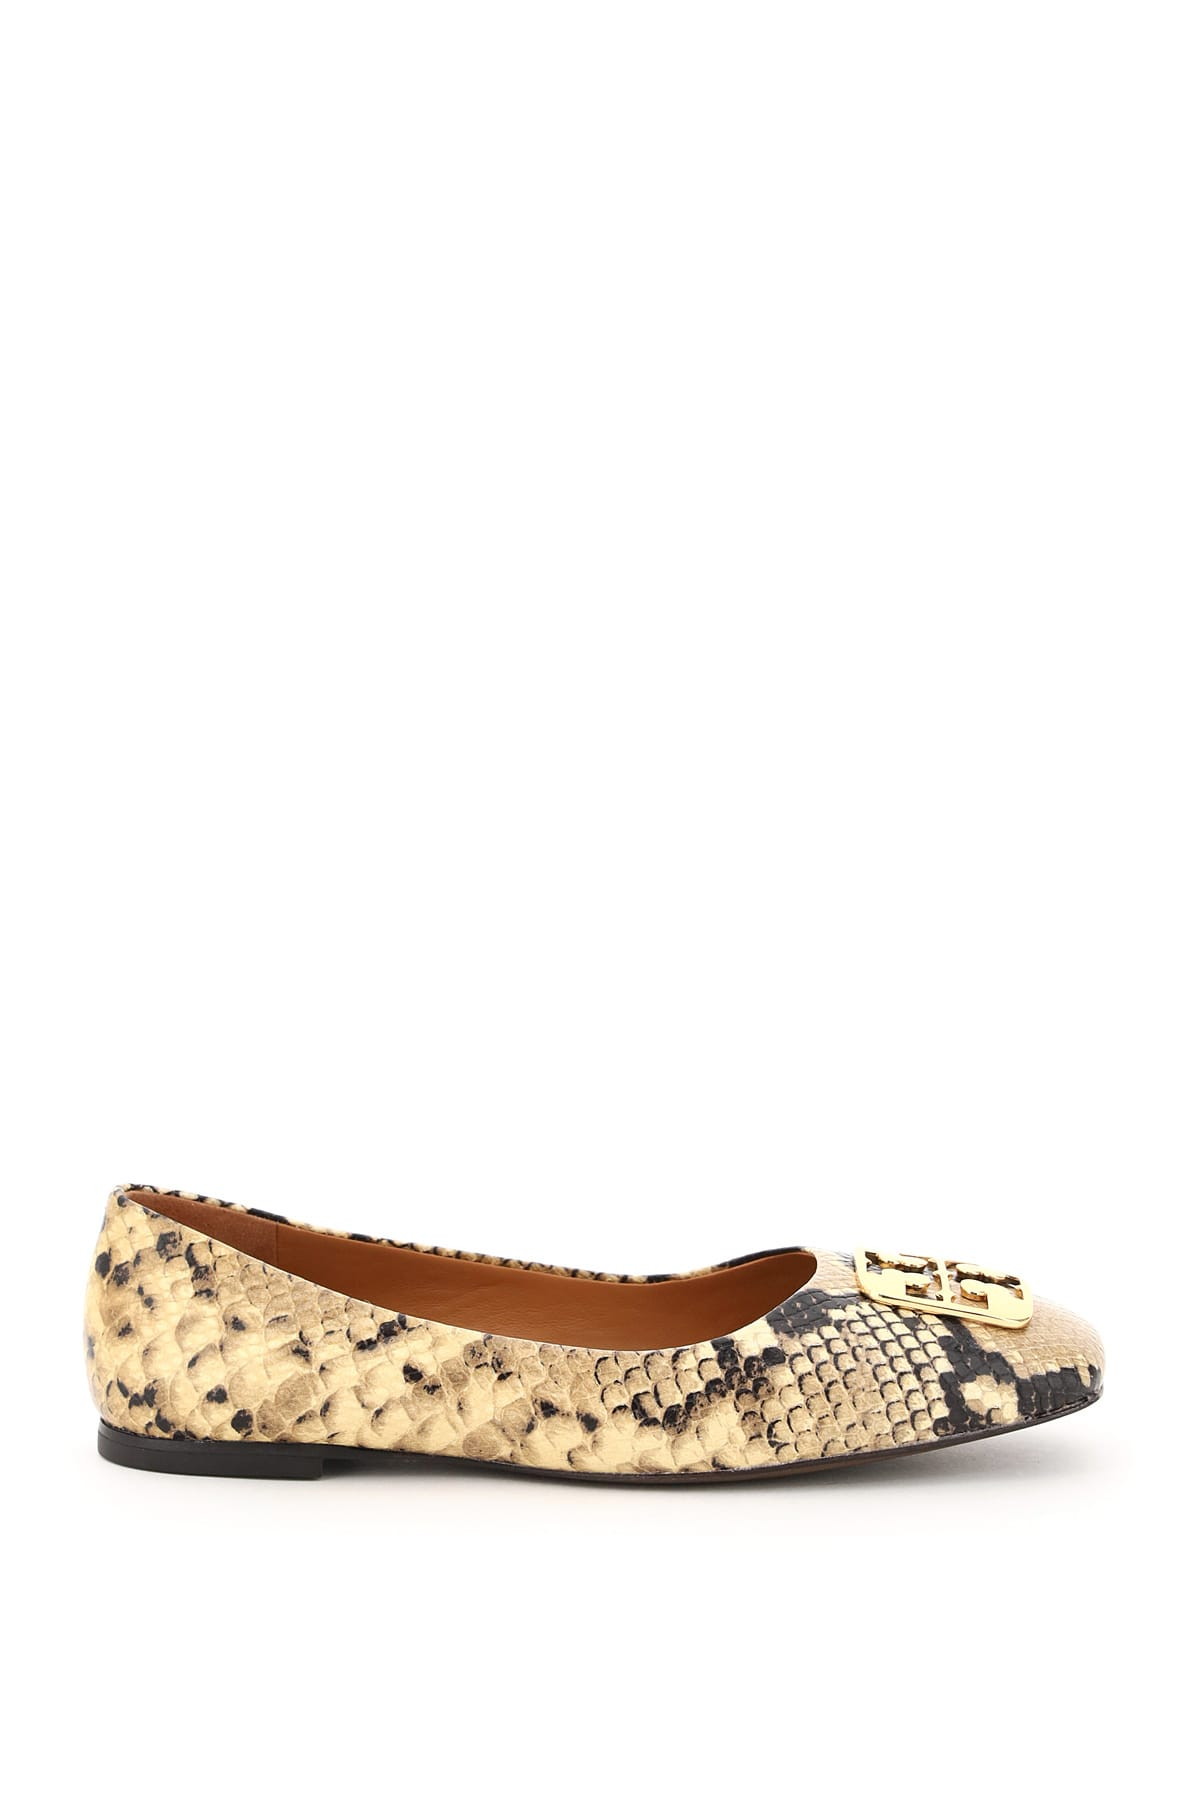 Buy Tory Burch Georgia Snake Print Ballet Flats online, shop Tory Burch shoes with free shipping